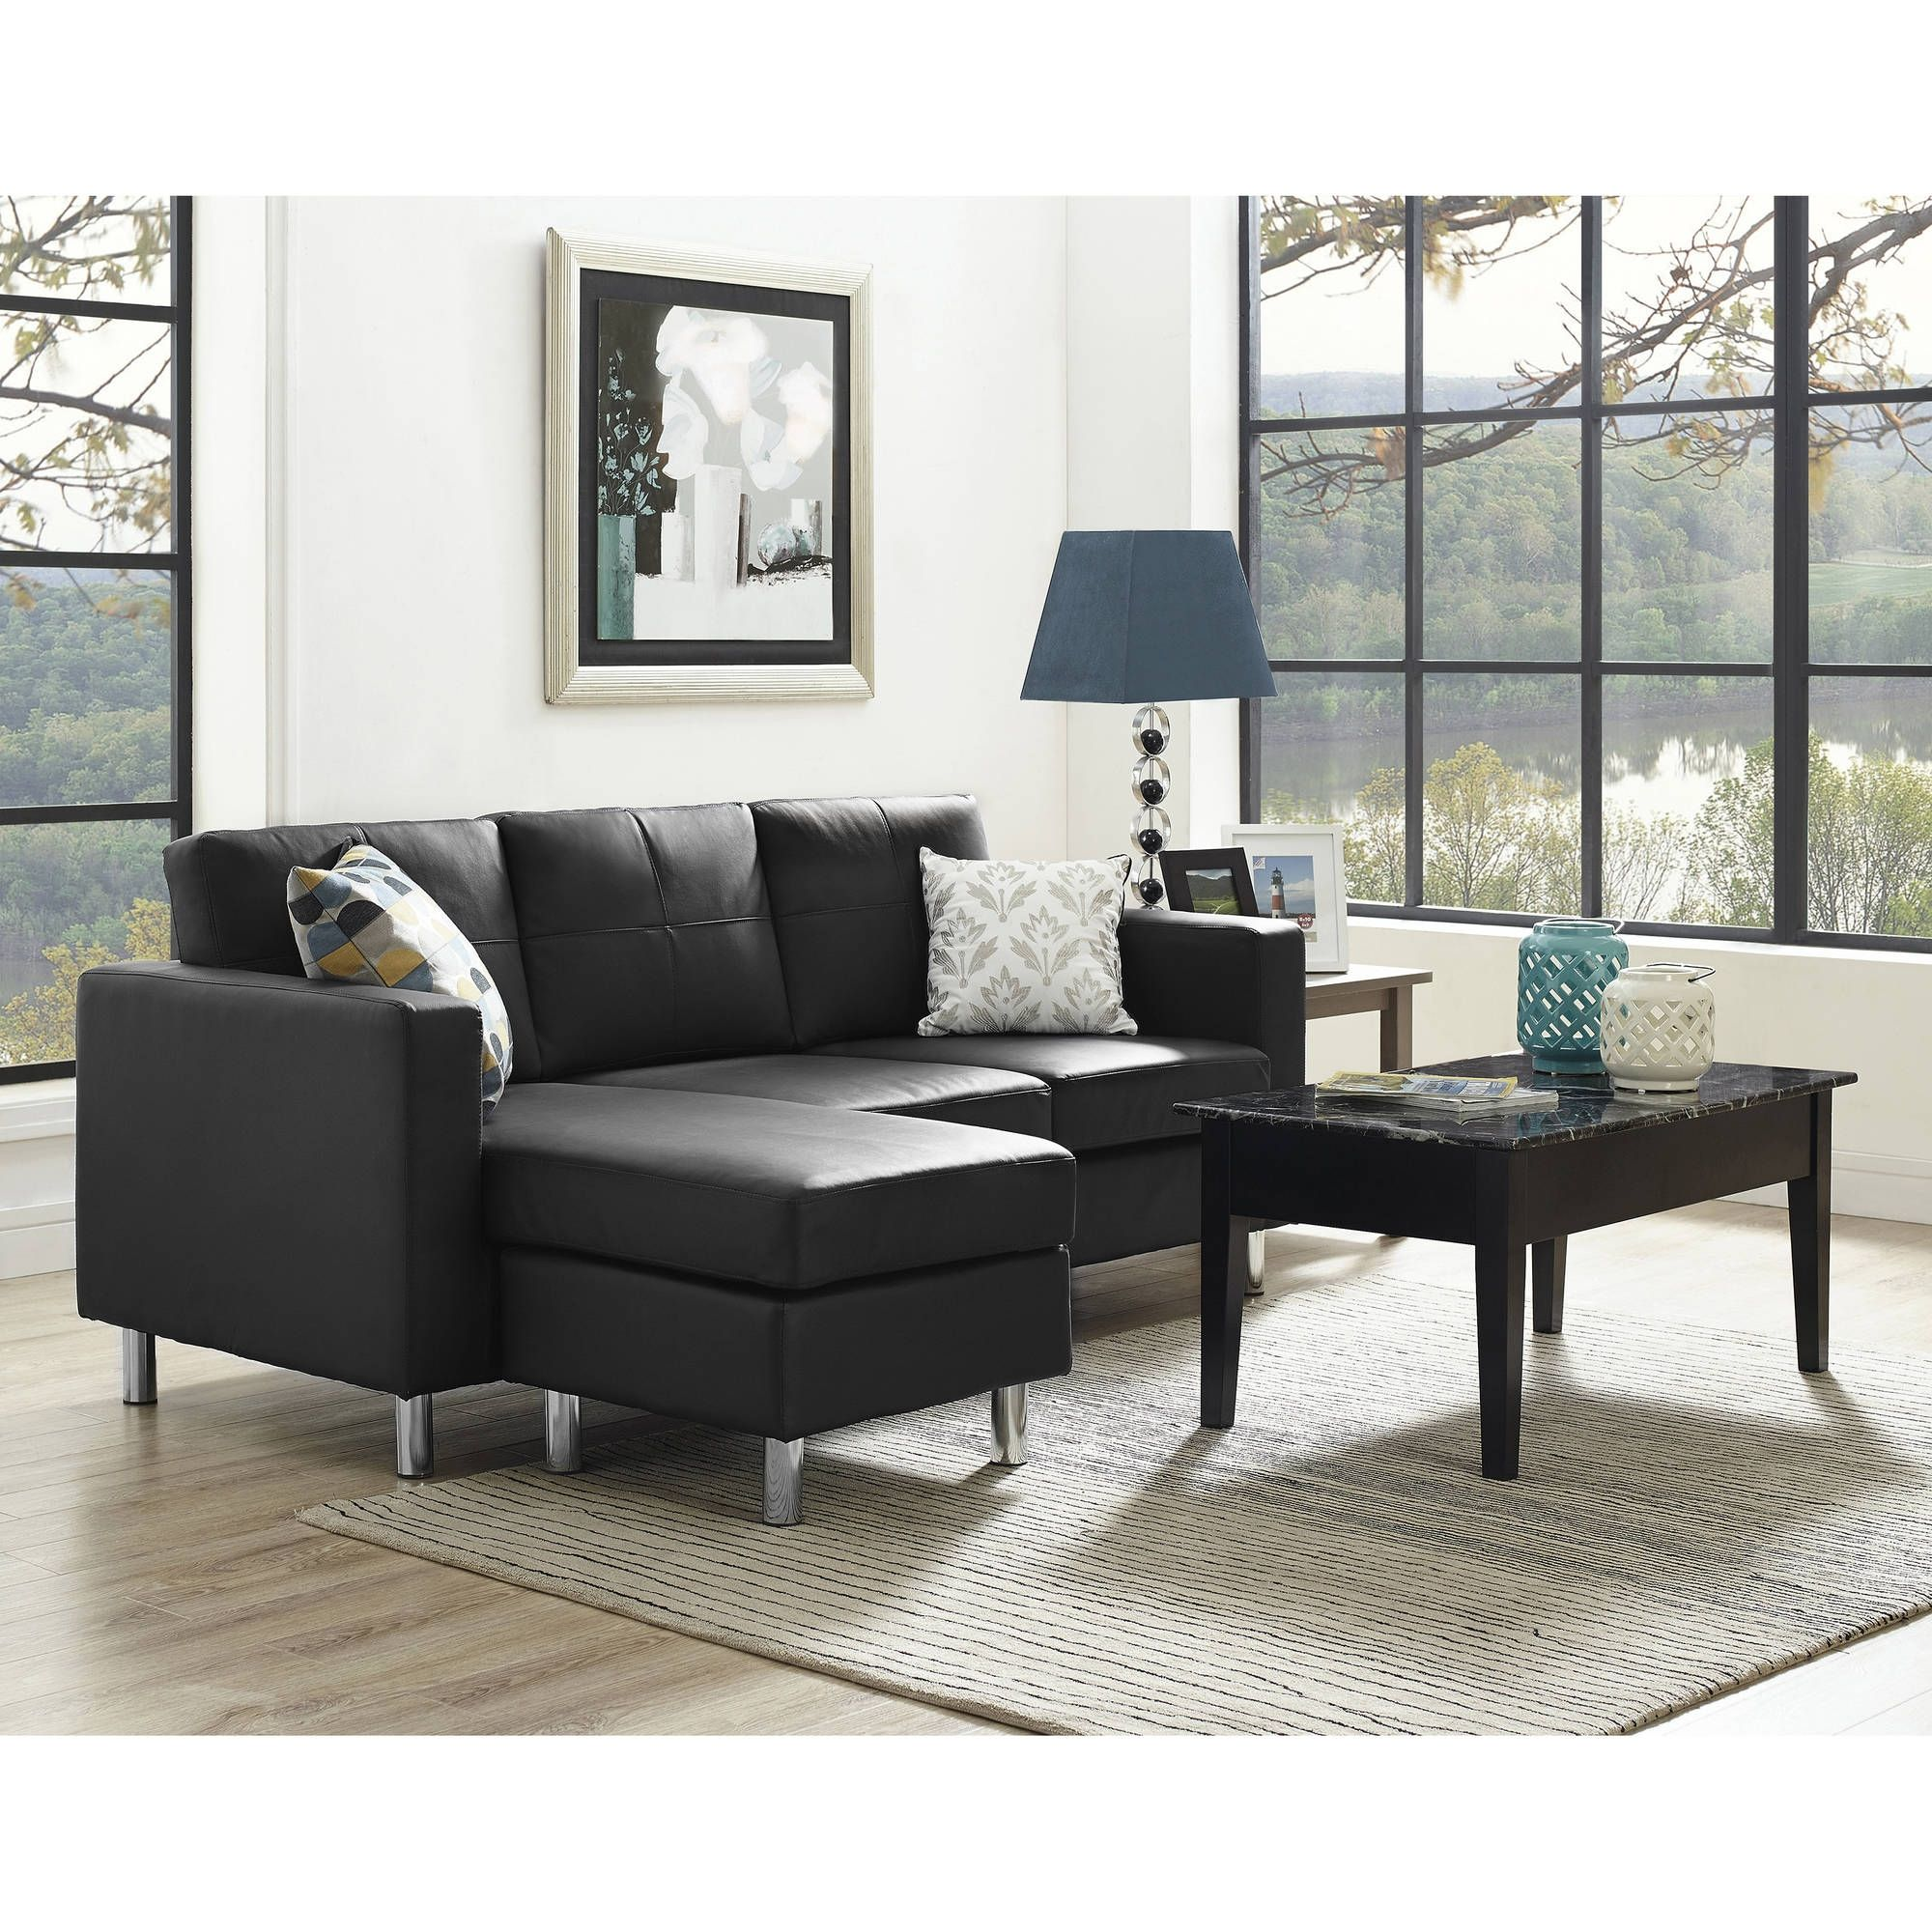 Dorel small spaces sectional sofa mlr pinterest